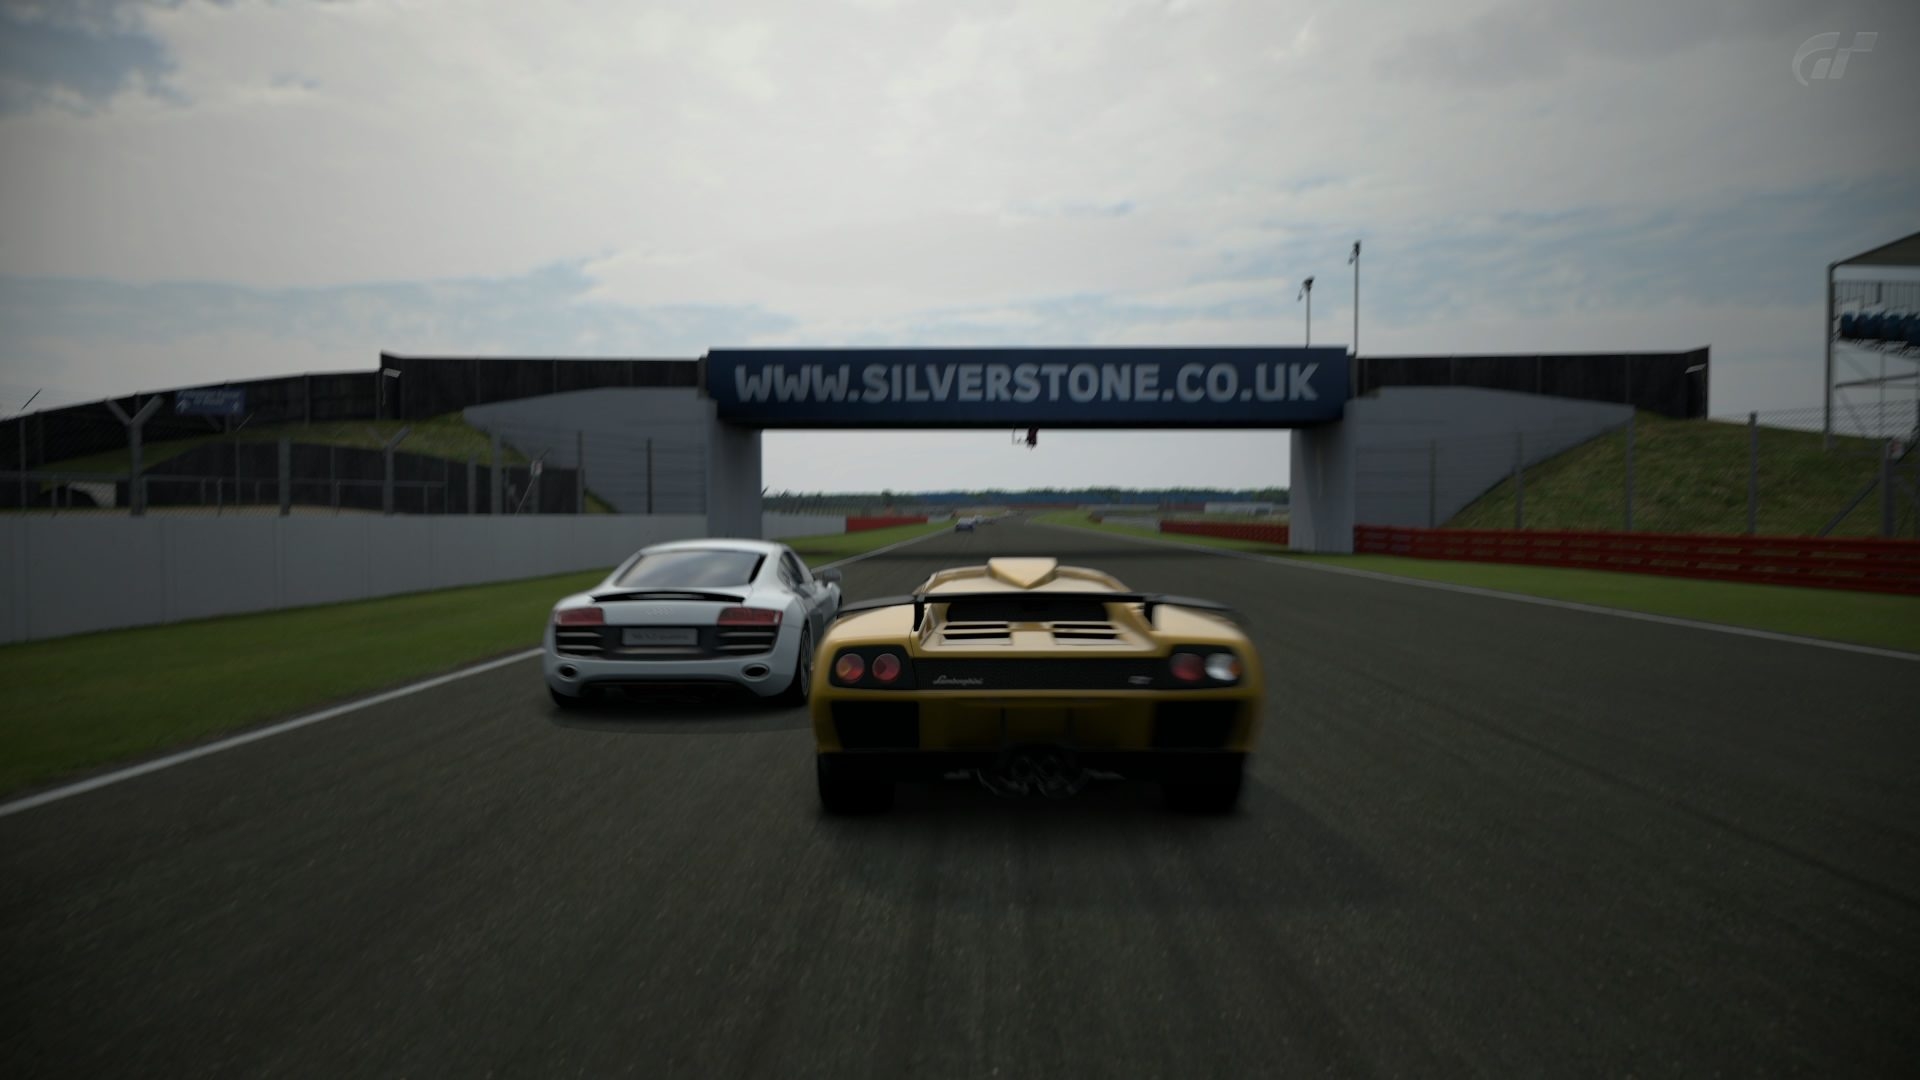 Silverstone International Circuit_1.jpg